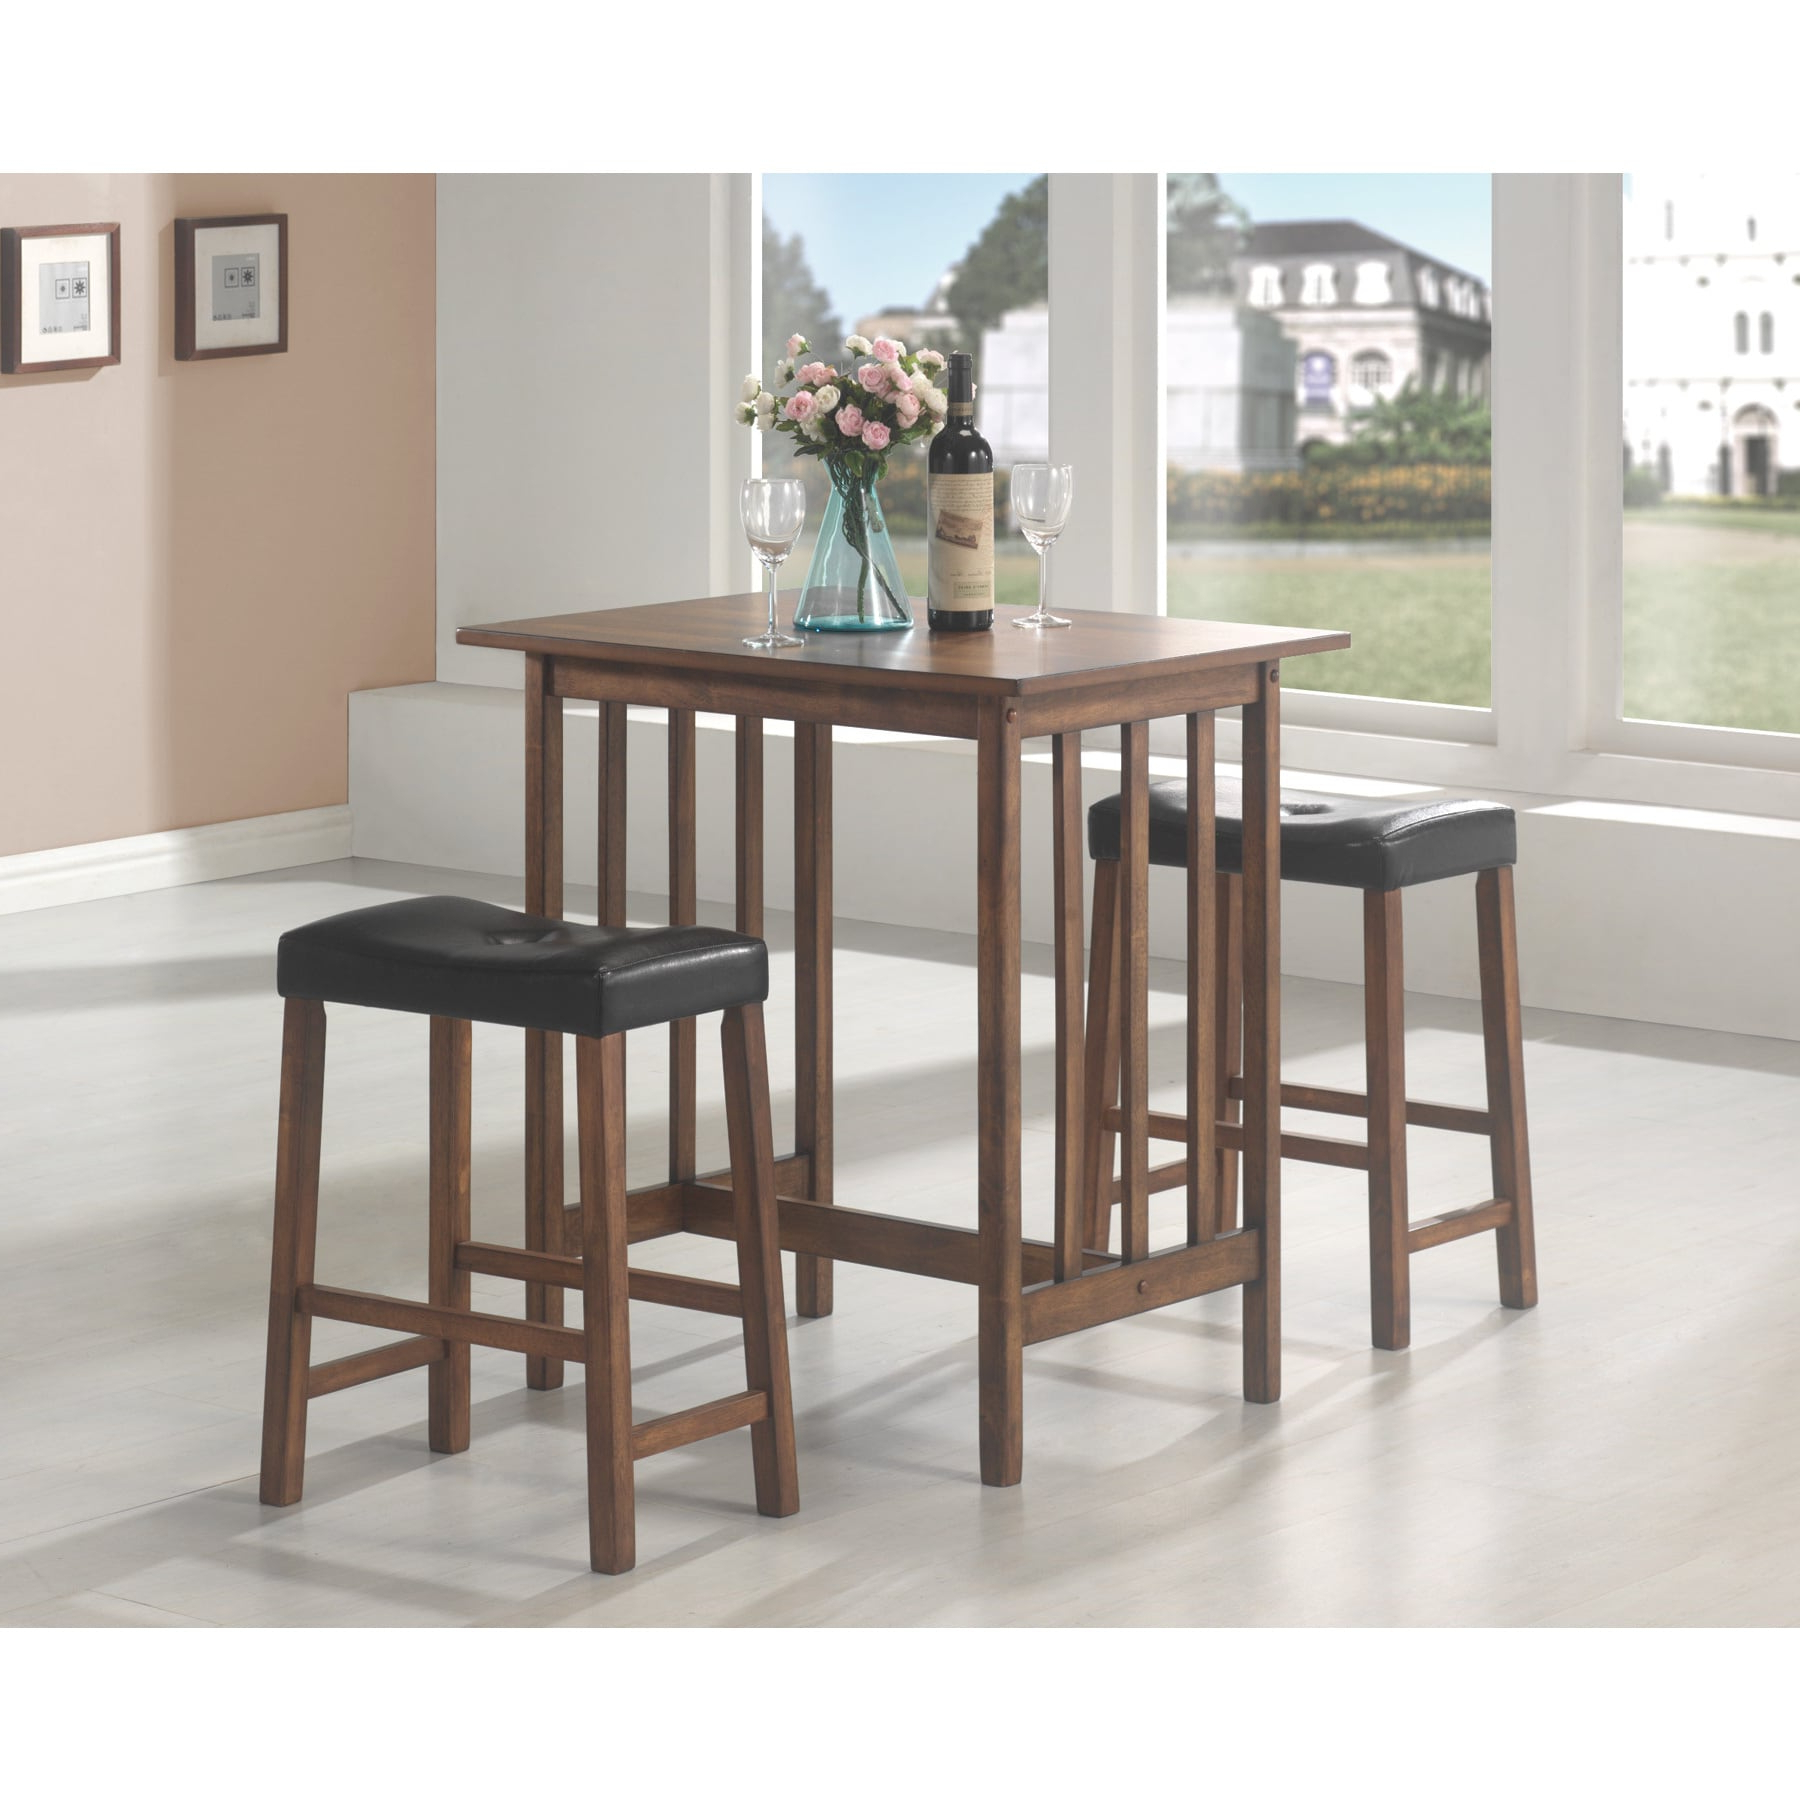 Favorite Transitional Antique Walnut Square Casual Dining Tables Intended For Coaster Company 3 Piece Table Set, Nut Brown – Walmart (Gallery 29 of 30)